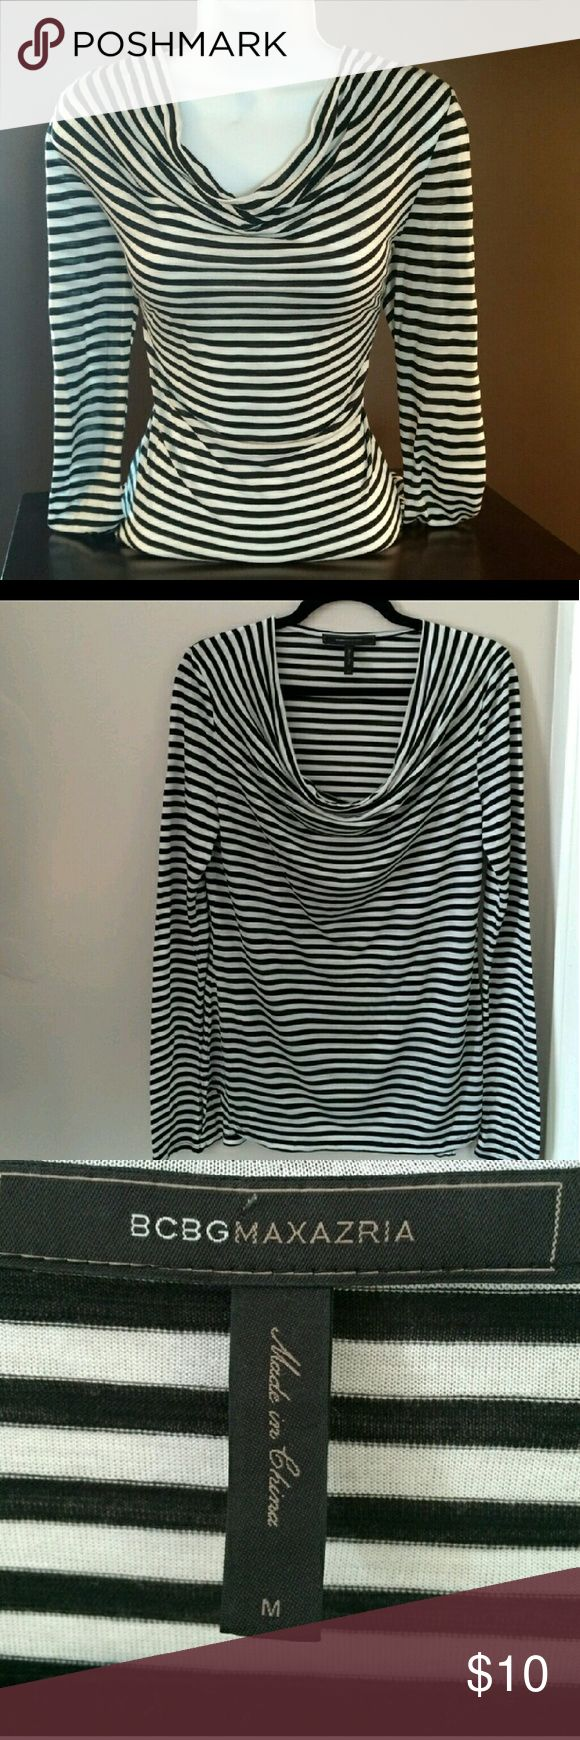 "BCBGMAXAZRIA top Lightweight striped top. Very comfy and versatile. Looks great worn alone, under a blazer or jean jacket. Chest measurement is 34"". The length from shoulder to hem is 29"". In perfect condition BCBGMaxAzria Tops Blouses"